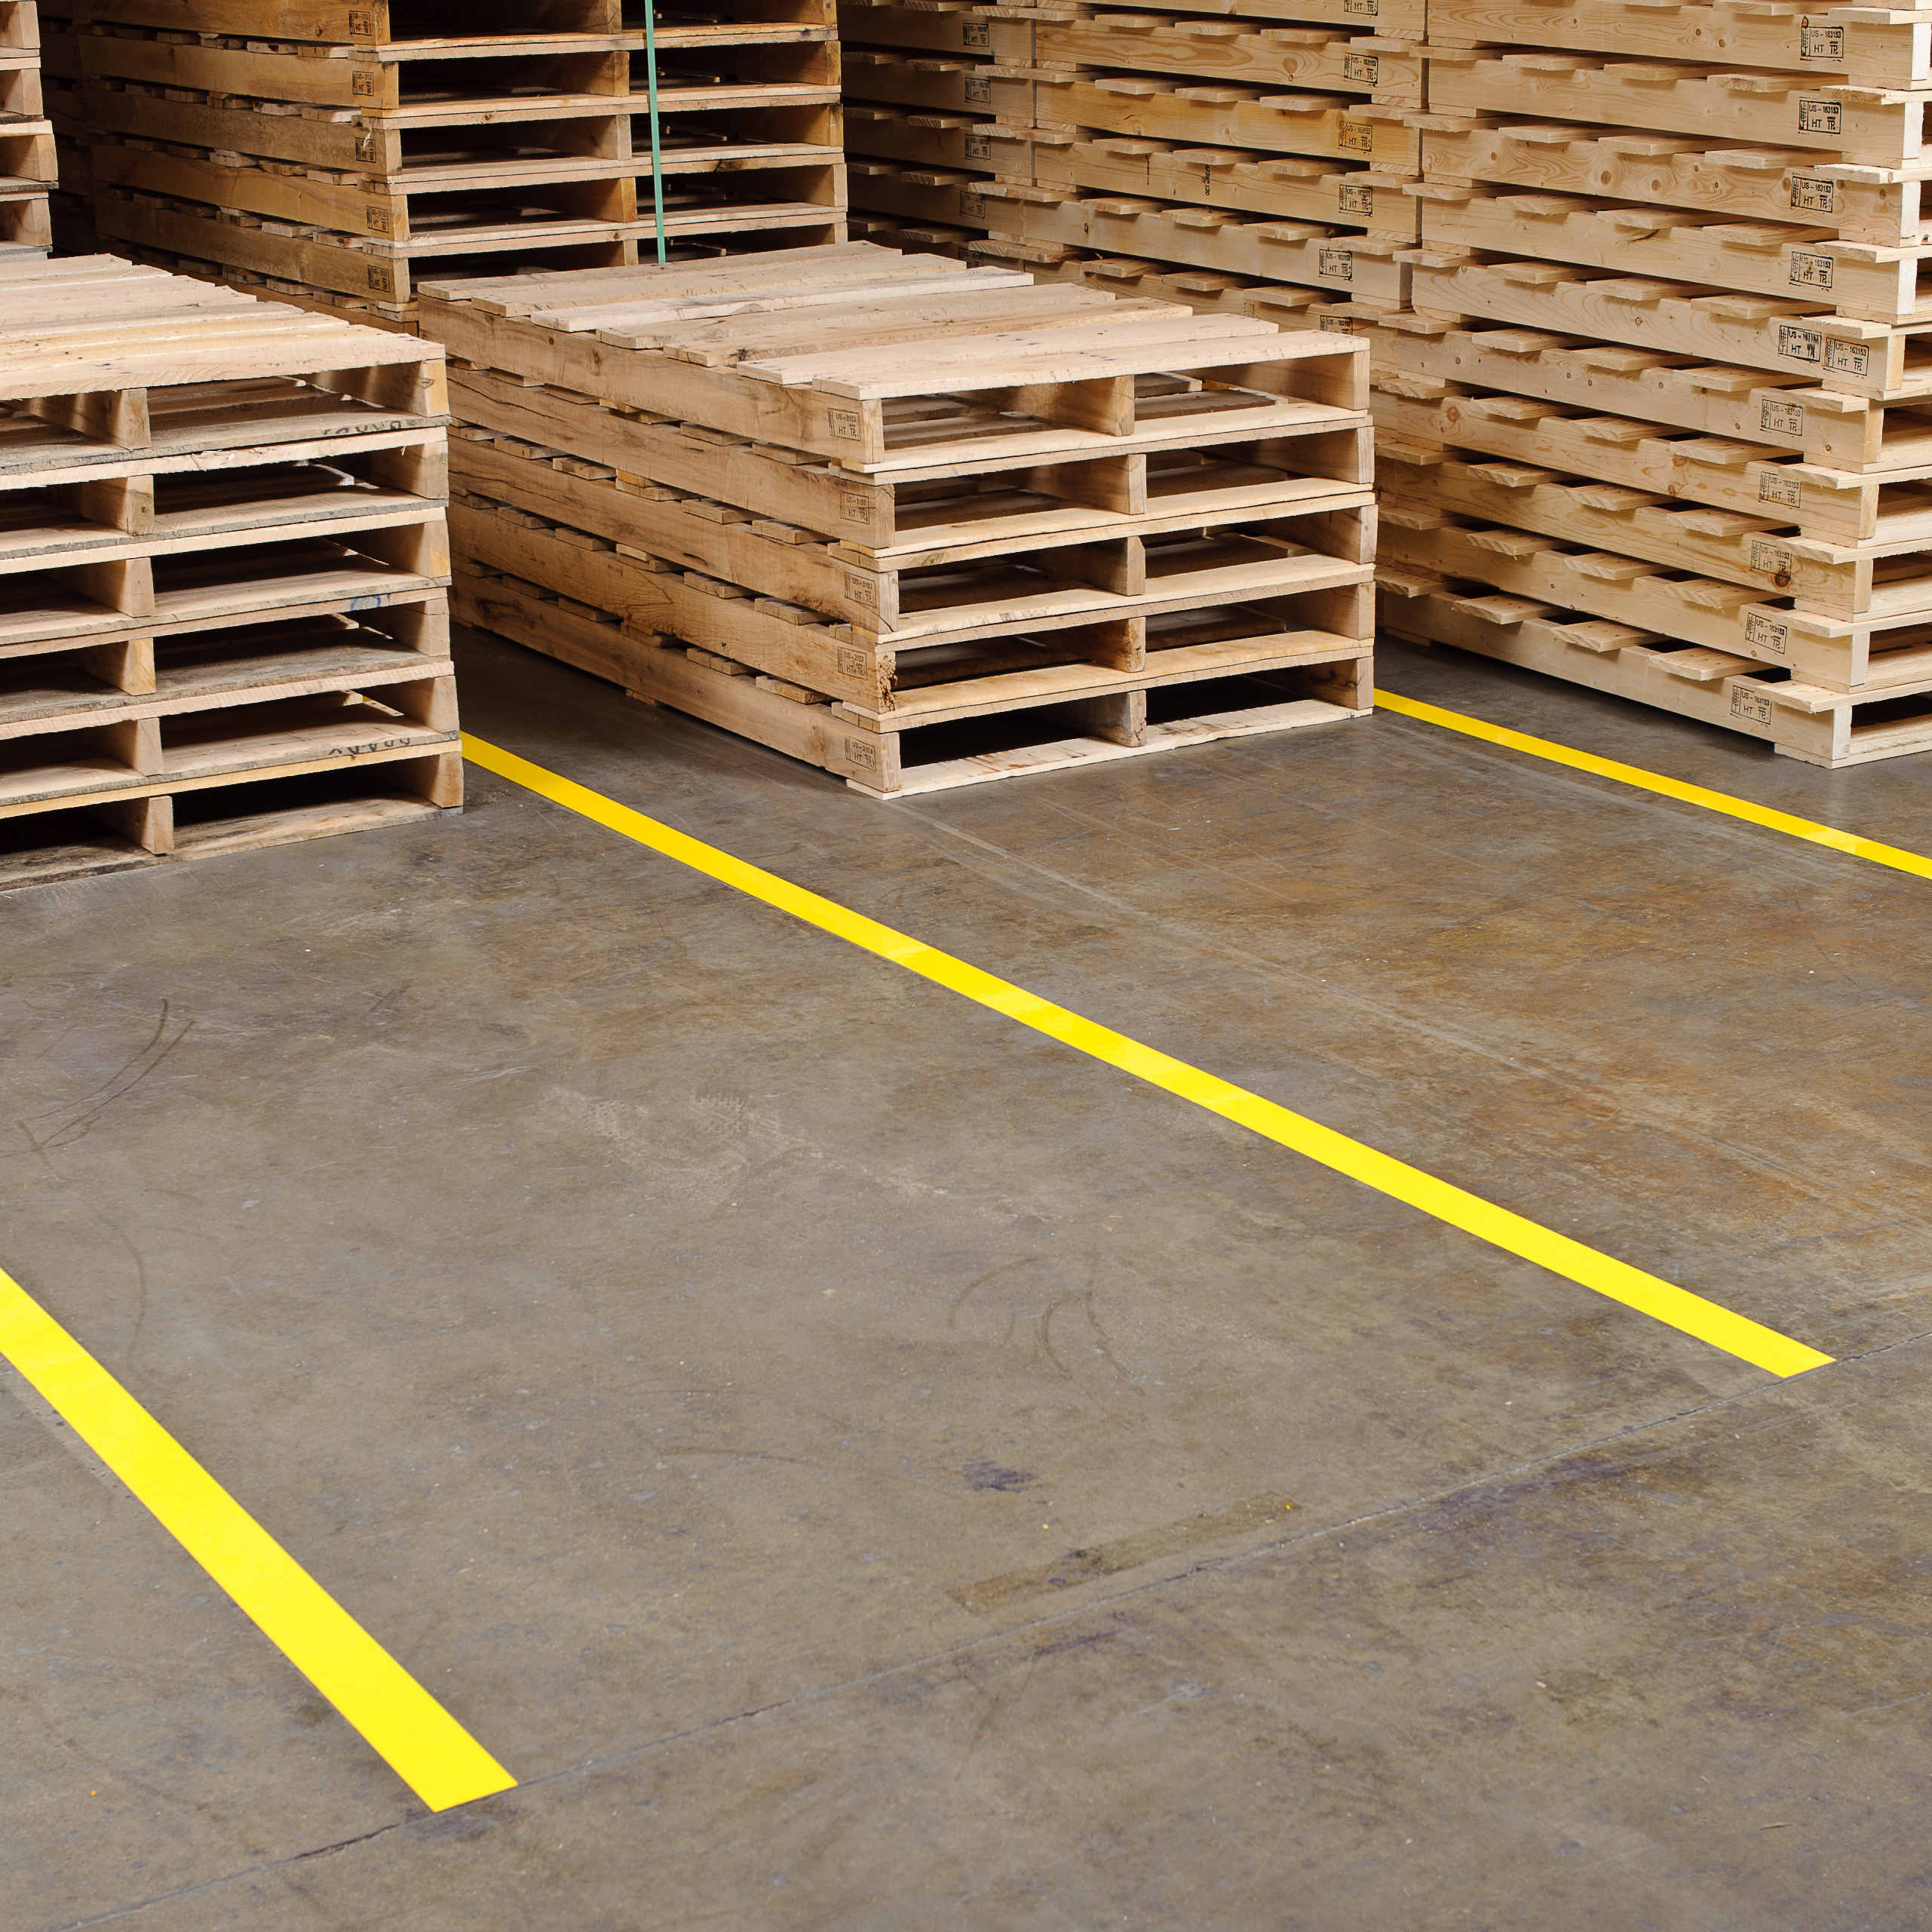 floors vizuline en marking tape tapes eshop floor